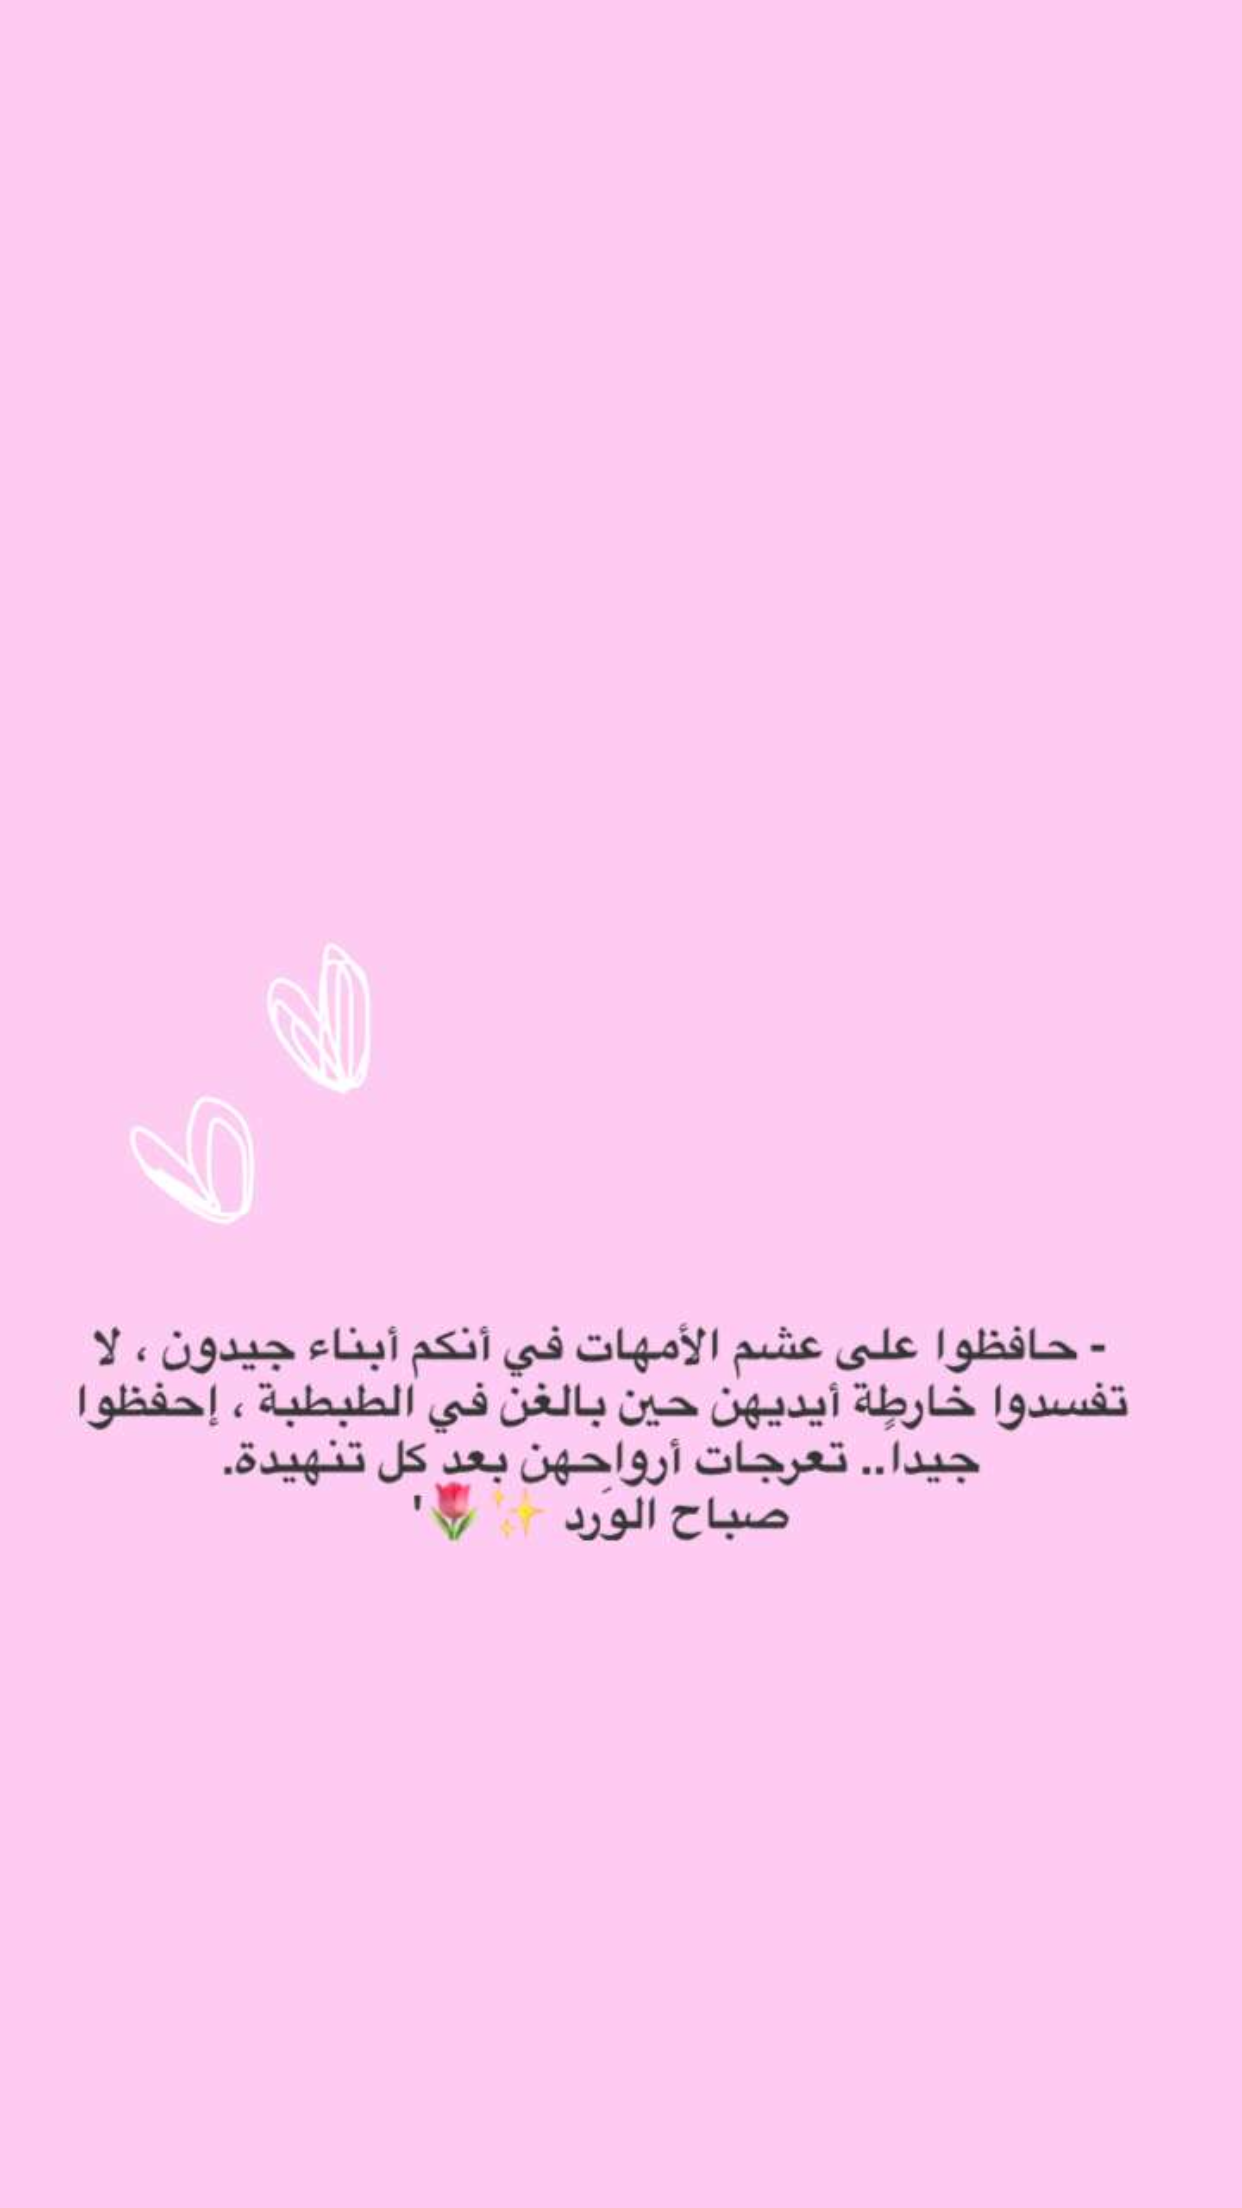 Pin By Malak On Ro0ofa 0 Snapchat Photo Quotes Arabic Words Phone Wallpaper Images